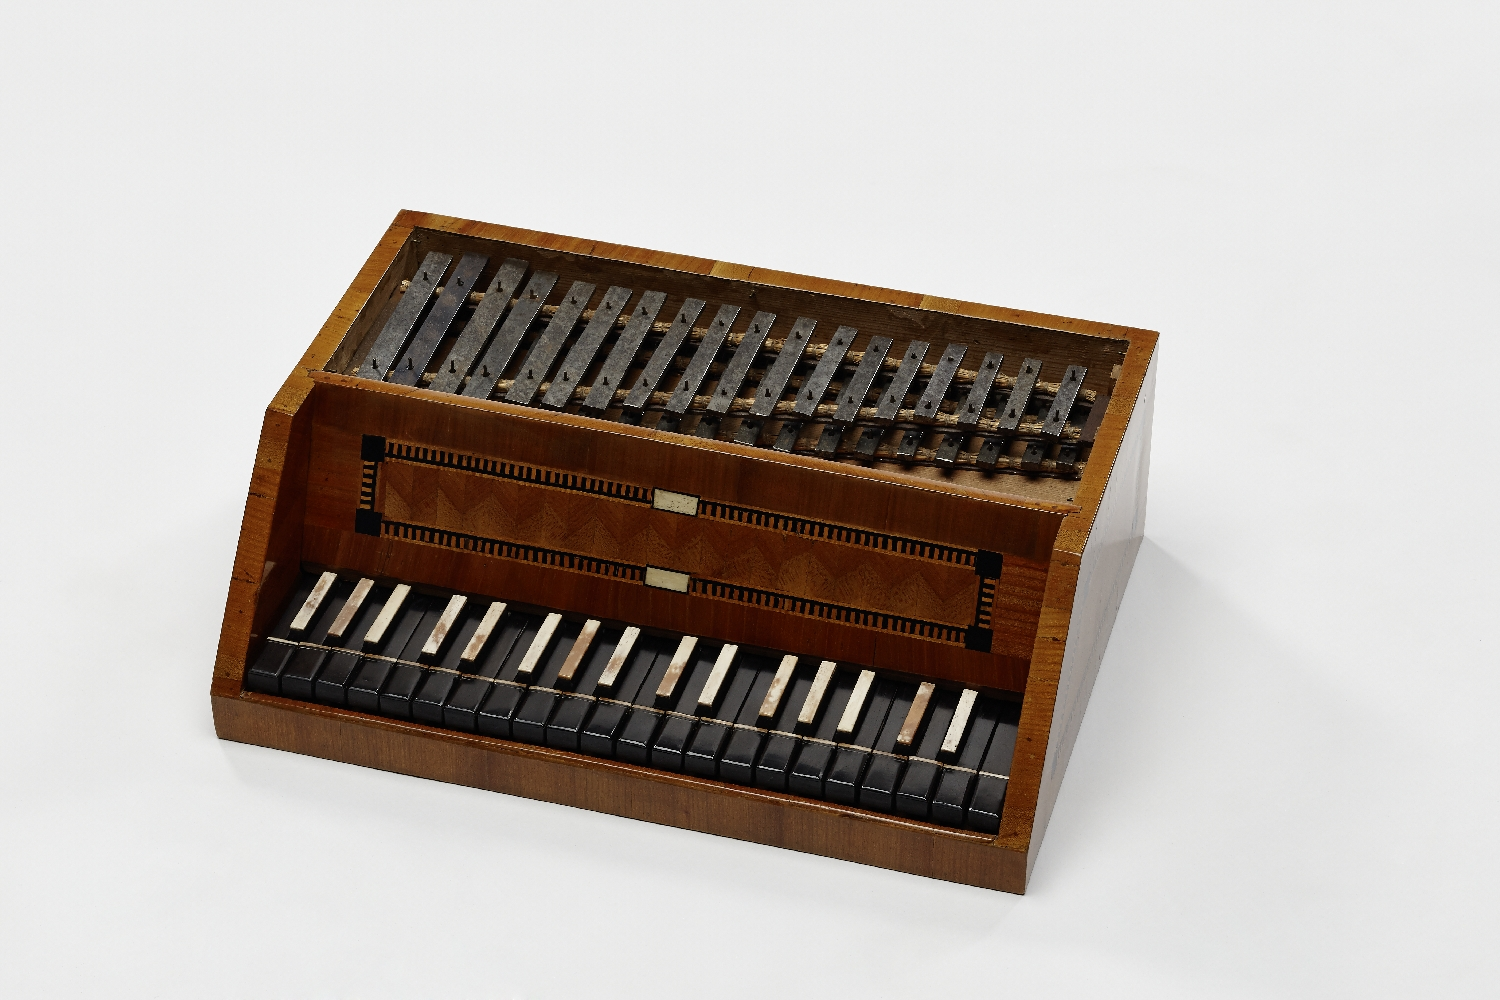 Steel piano, Jacob Peter Pirchl, Traunstein, 1805, wood (fir, cherry, ebony, maple), ivory, steel plates, inv. no. MI 1018